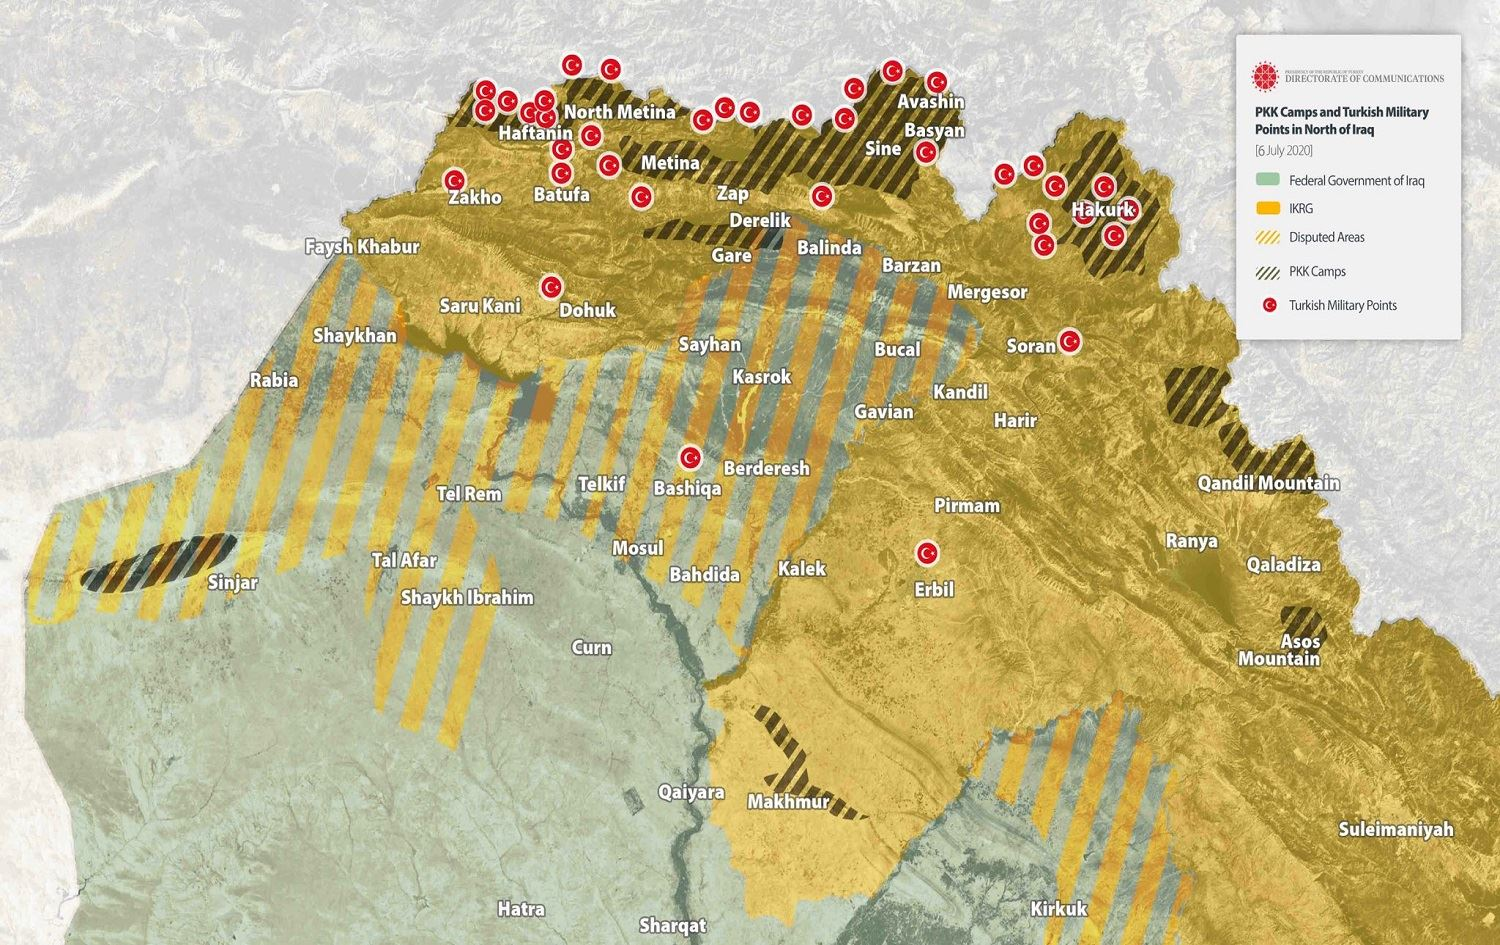 Turkey Has 37 'Military Points' In Northern Iraq (Map Update)